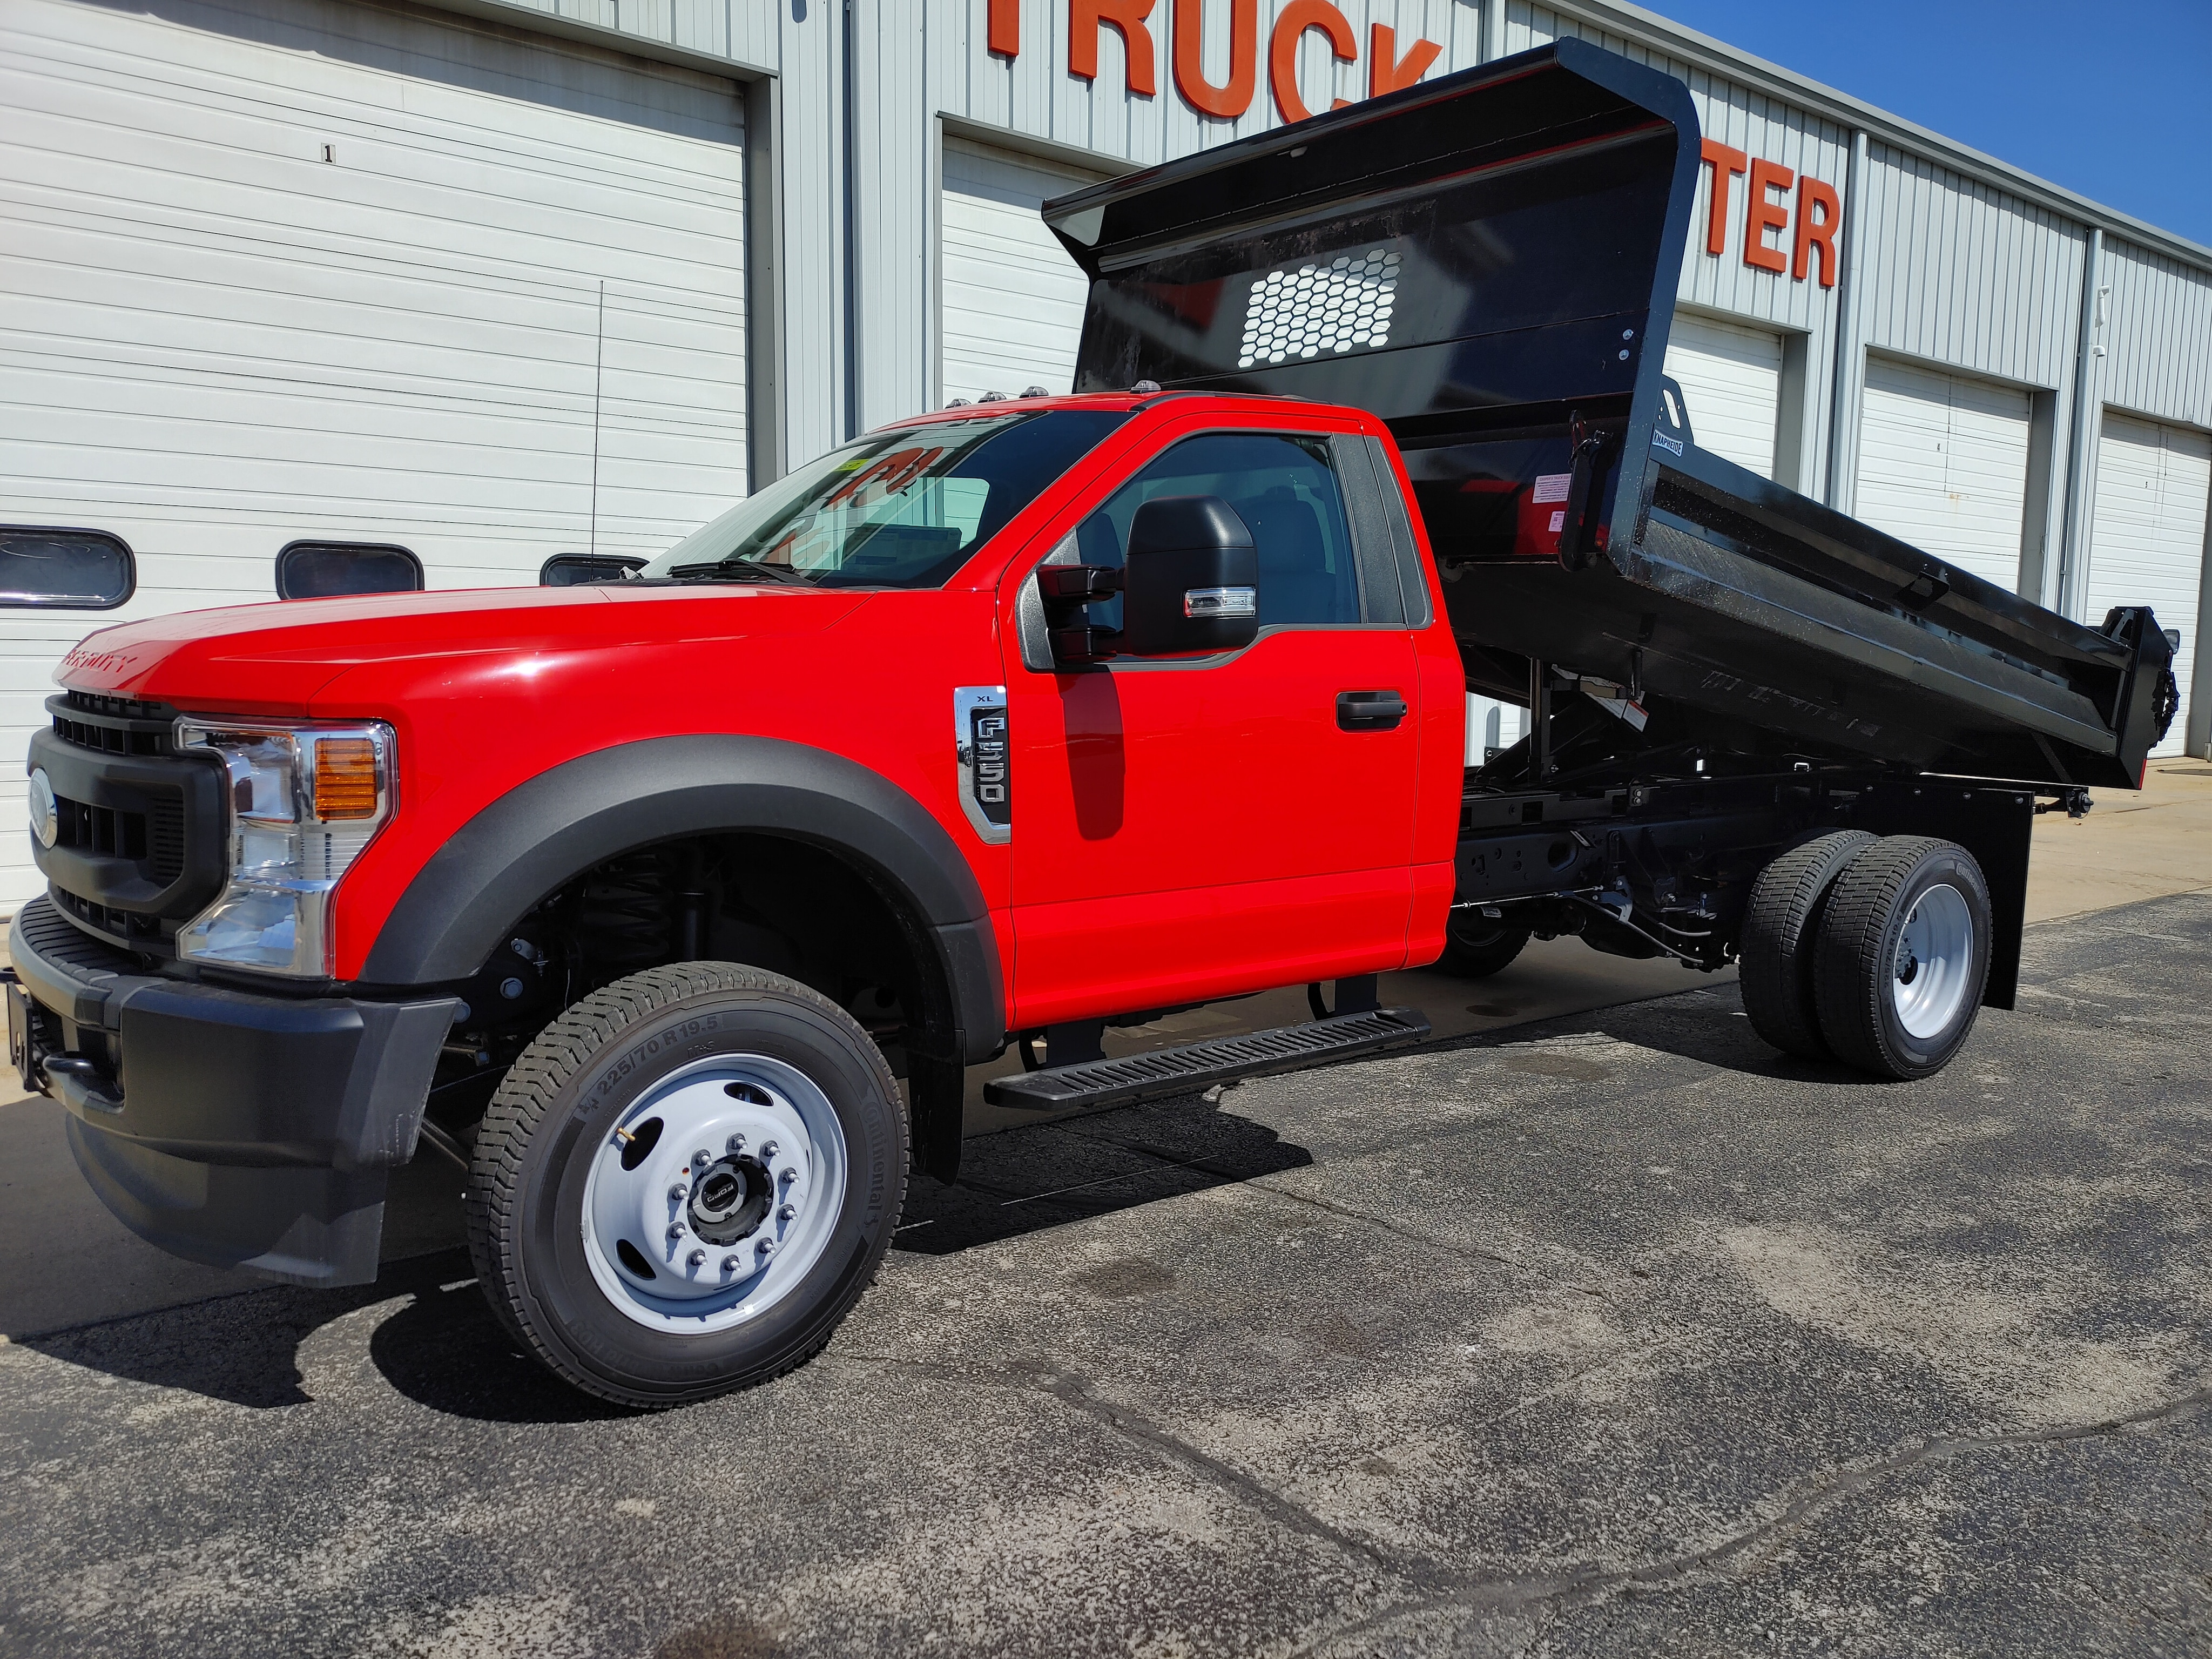 2020 Ford Chassis Cab F-550 XL Commercial-truck 3647